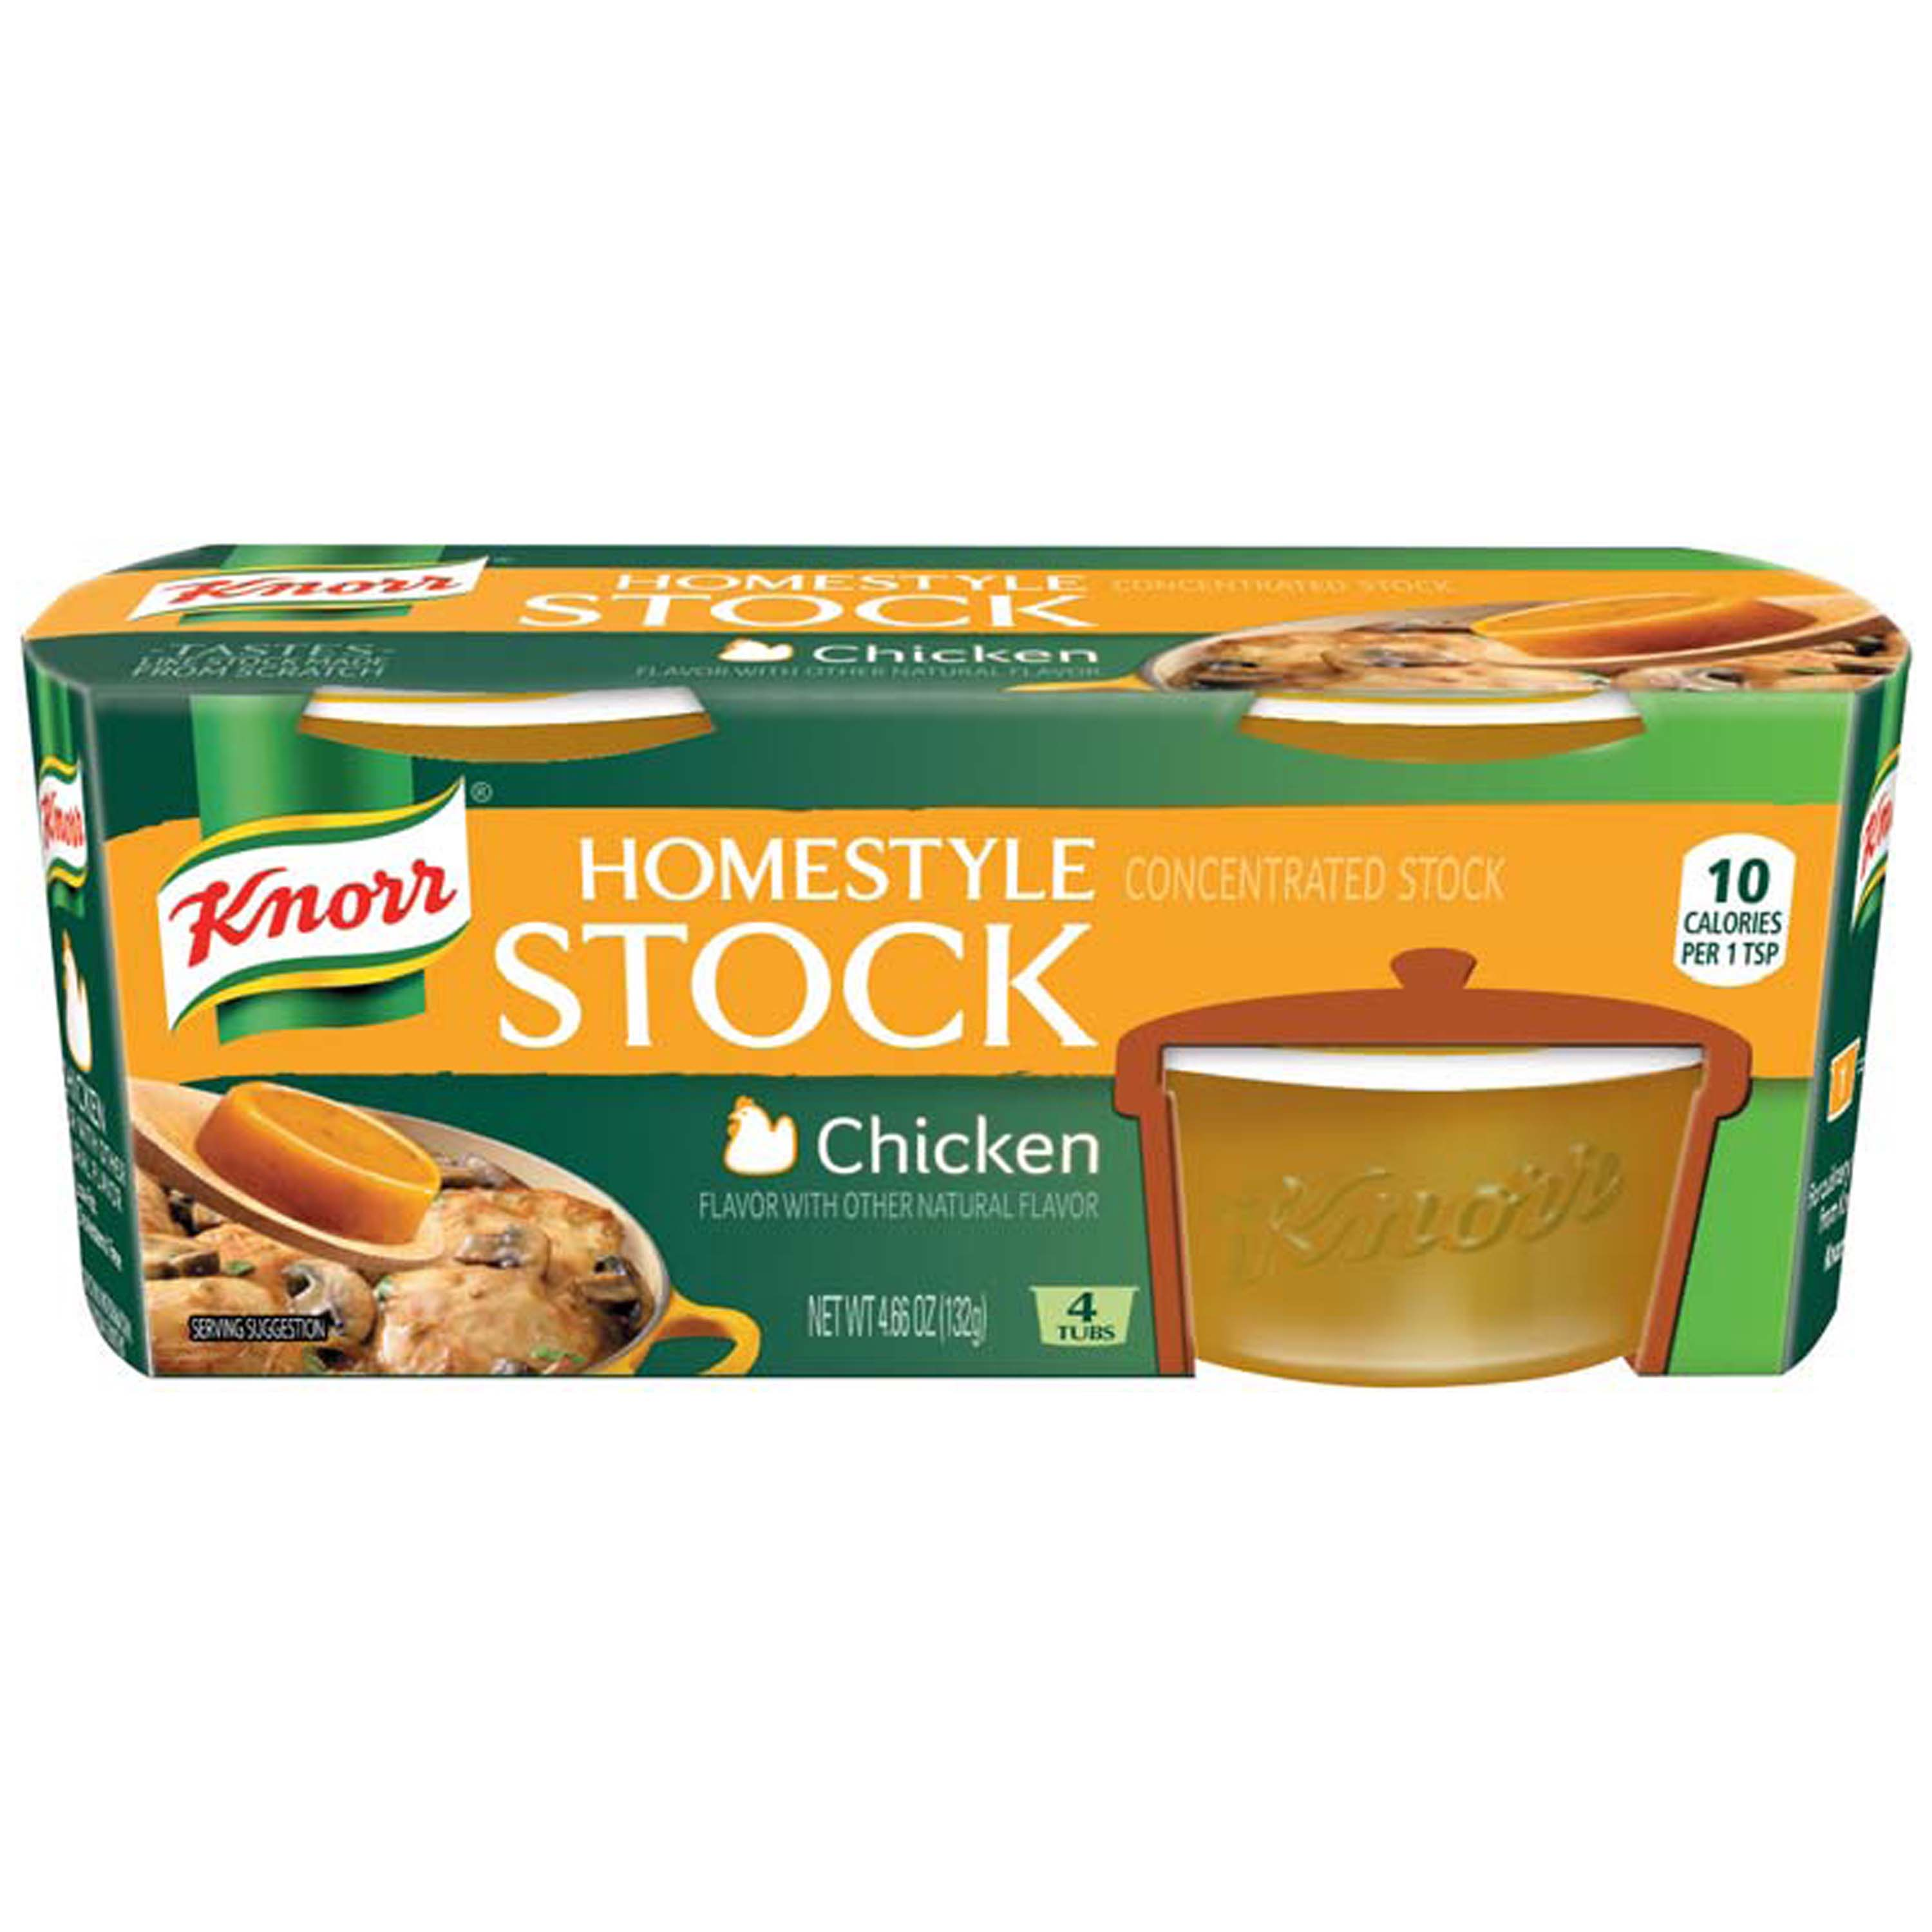 Knorr Chicken Homestyle Stock, 4.66 oz